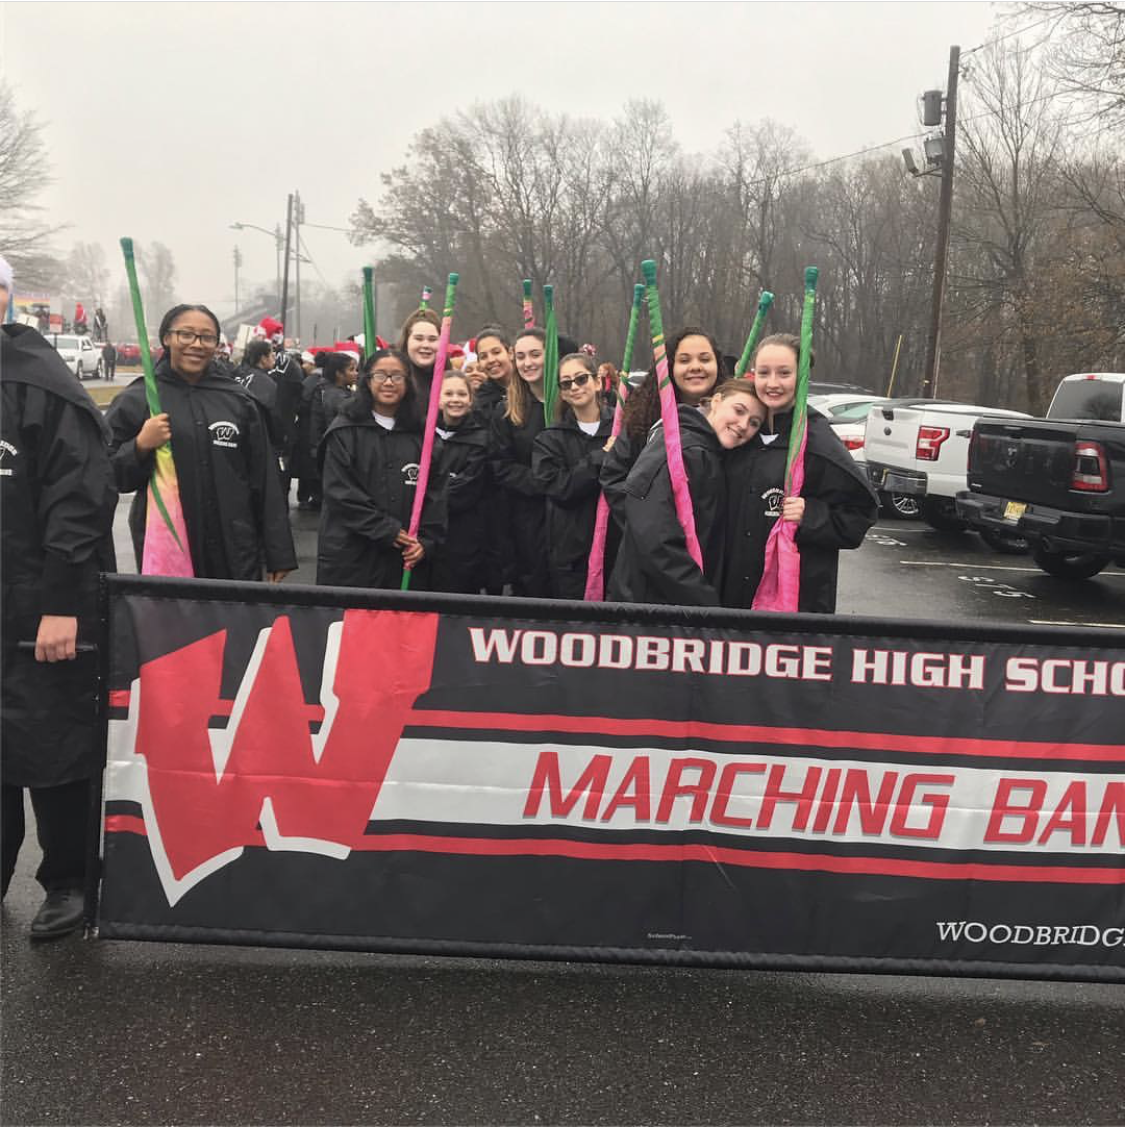 Woodbridge High-schoolers and middle schoolers in marching band smile for the camera.